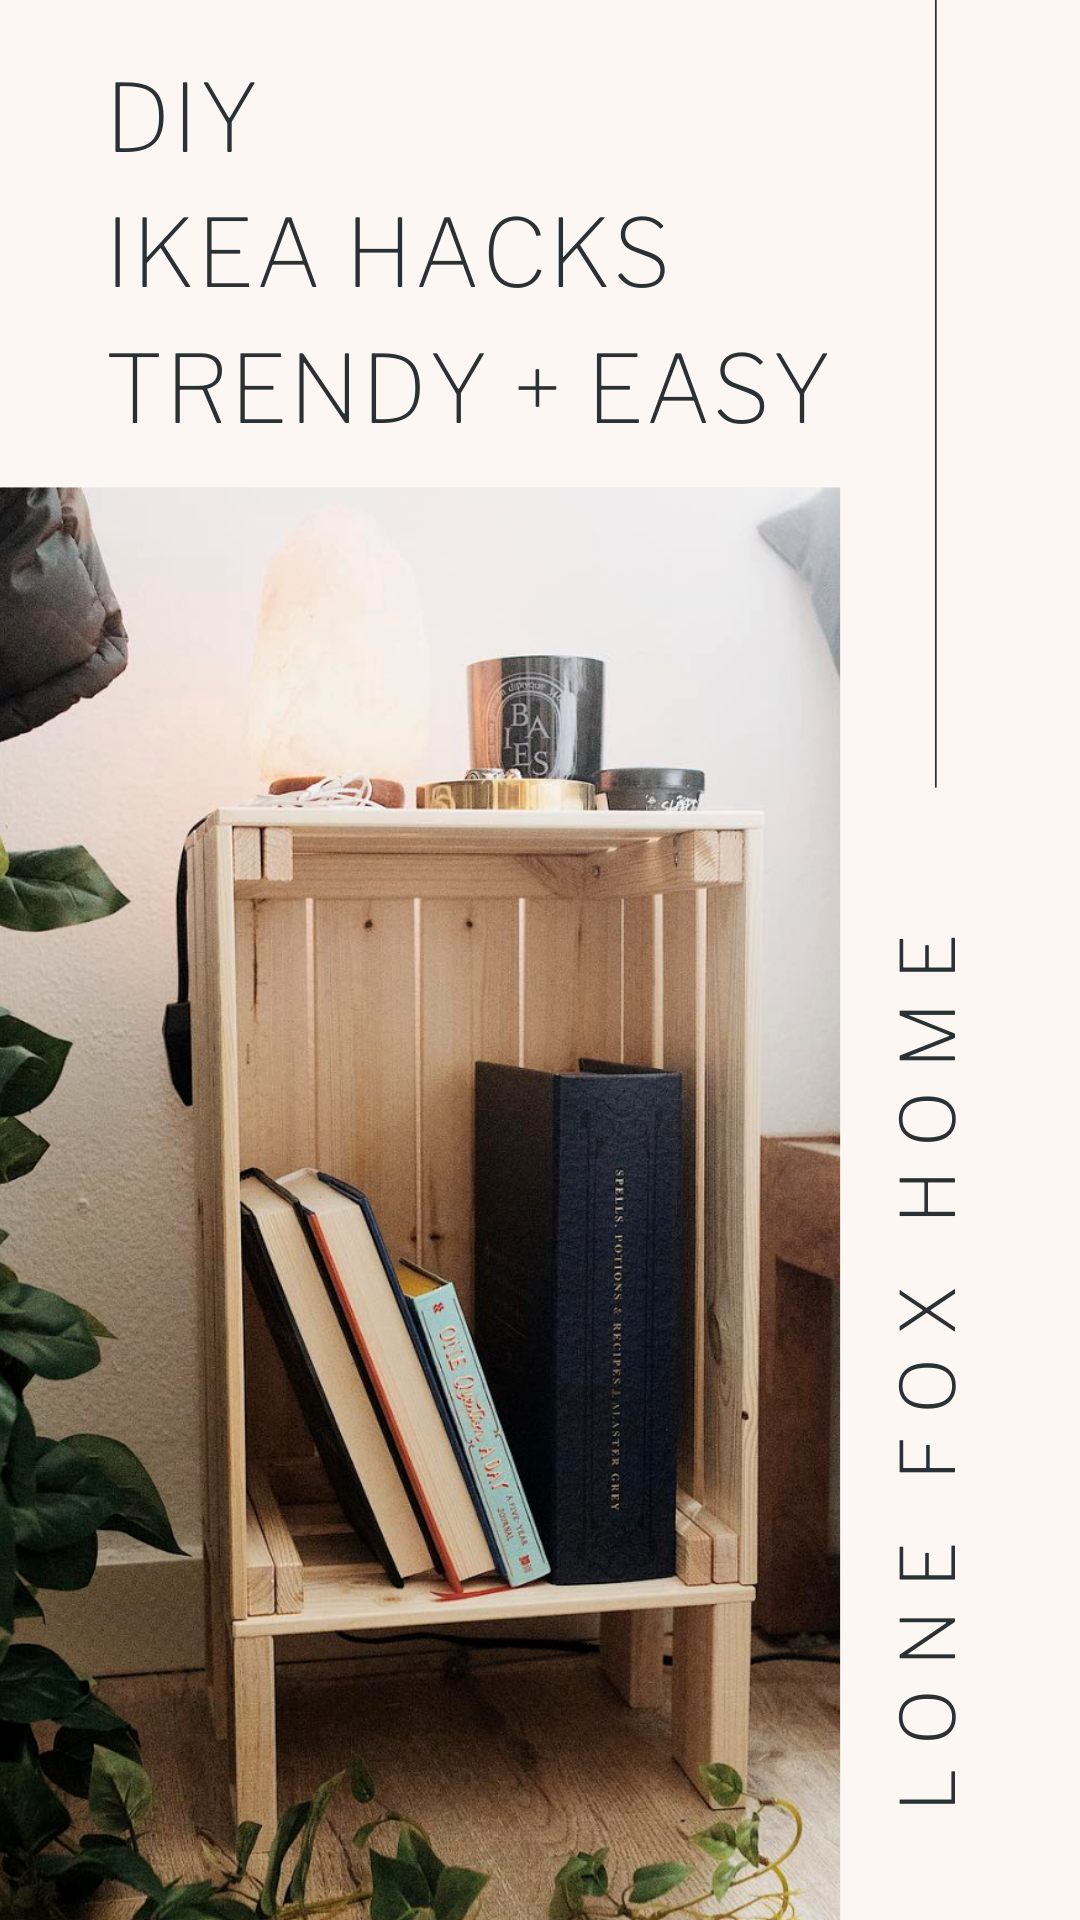 DIY IKEA Hacks Storage + Room Decor in 2020 | Ikea hack ...